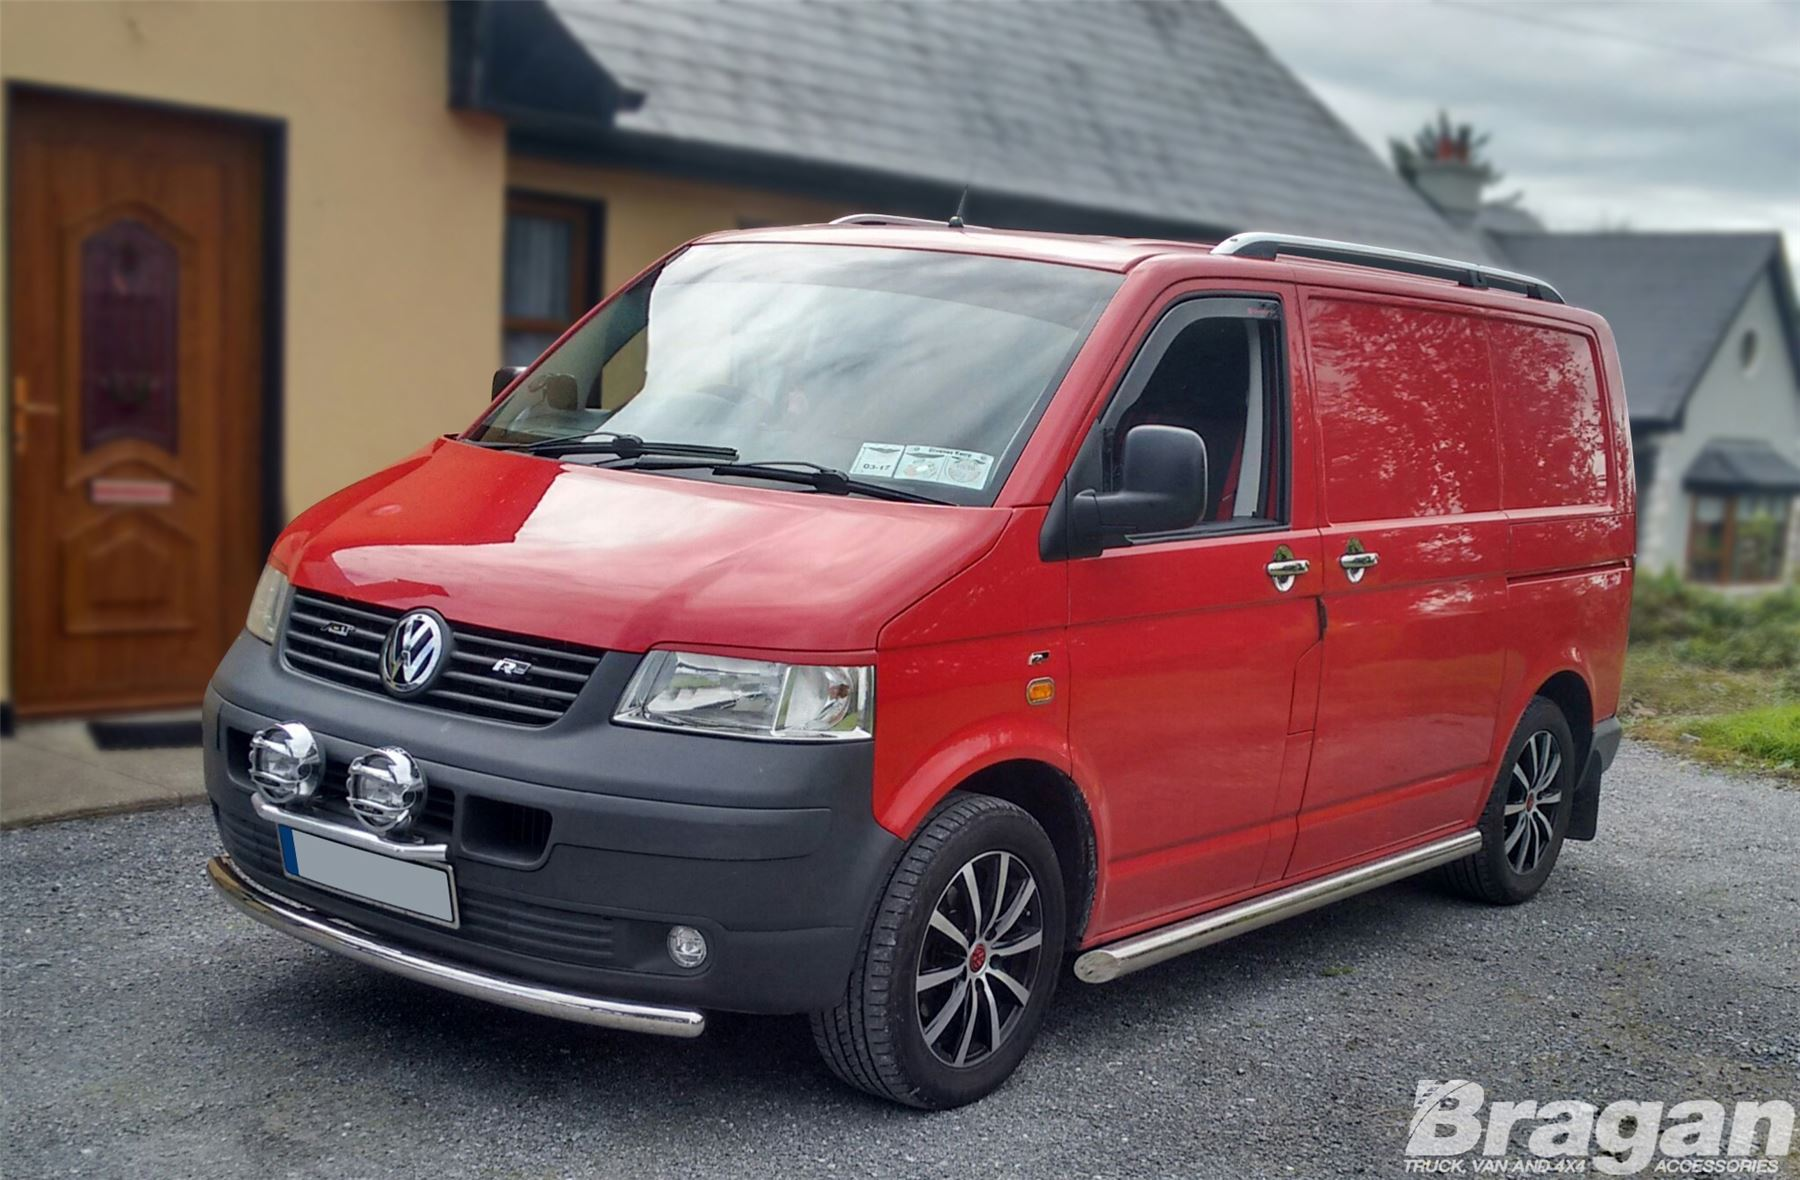 2004 2015 volkswagen vw transporter t5 caravelle lwb stainless side bars. Black Bedroom Furniture Sets. Home Design Ideas